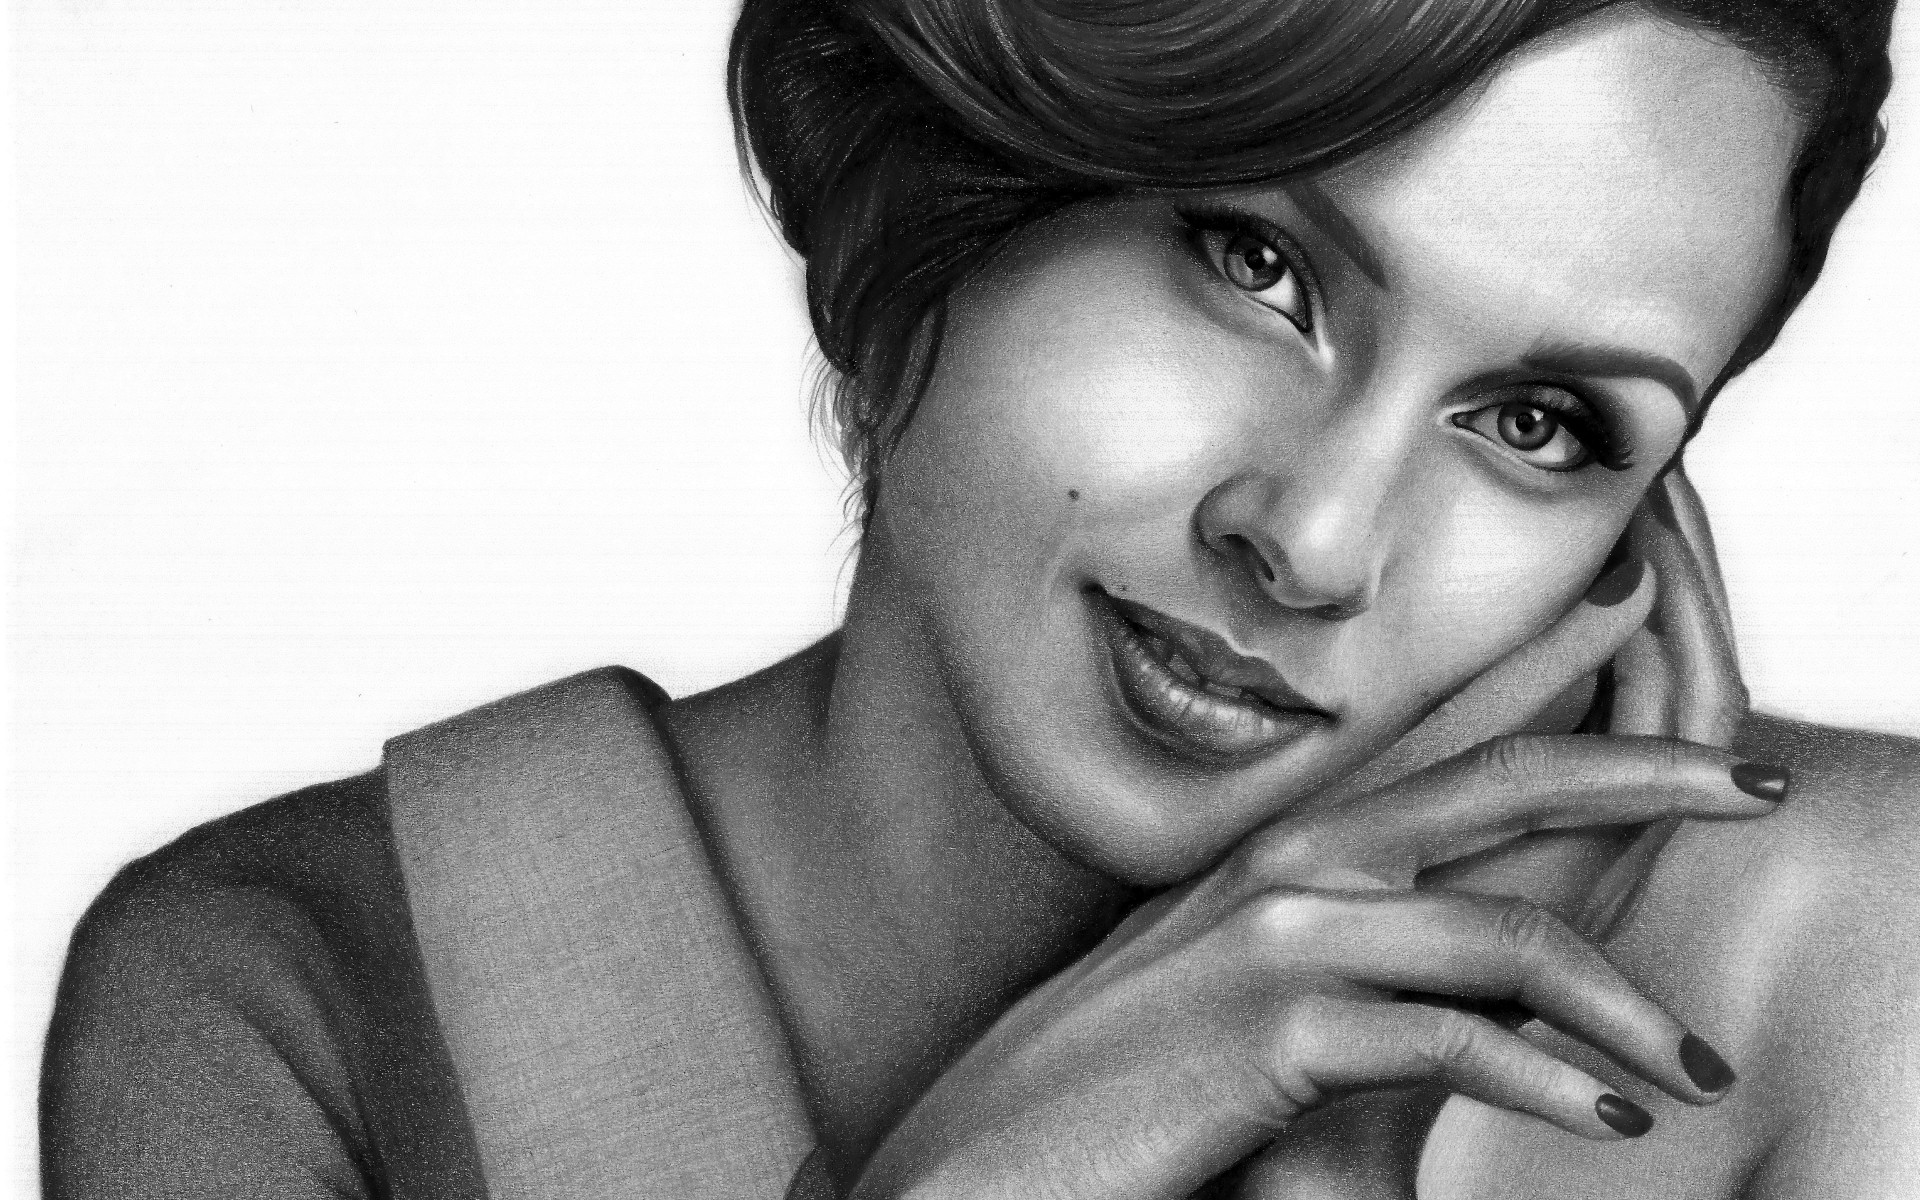 The drawn portrait of Alicia Keys wallpaper 1920x1200